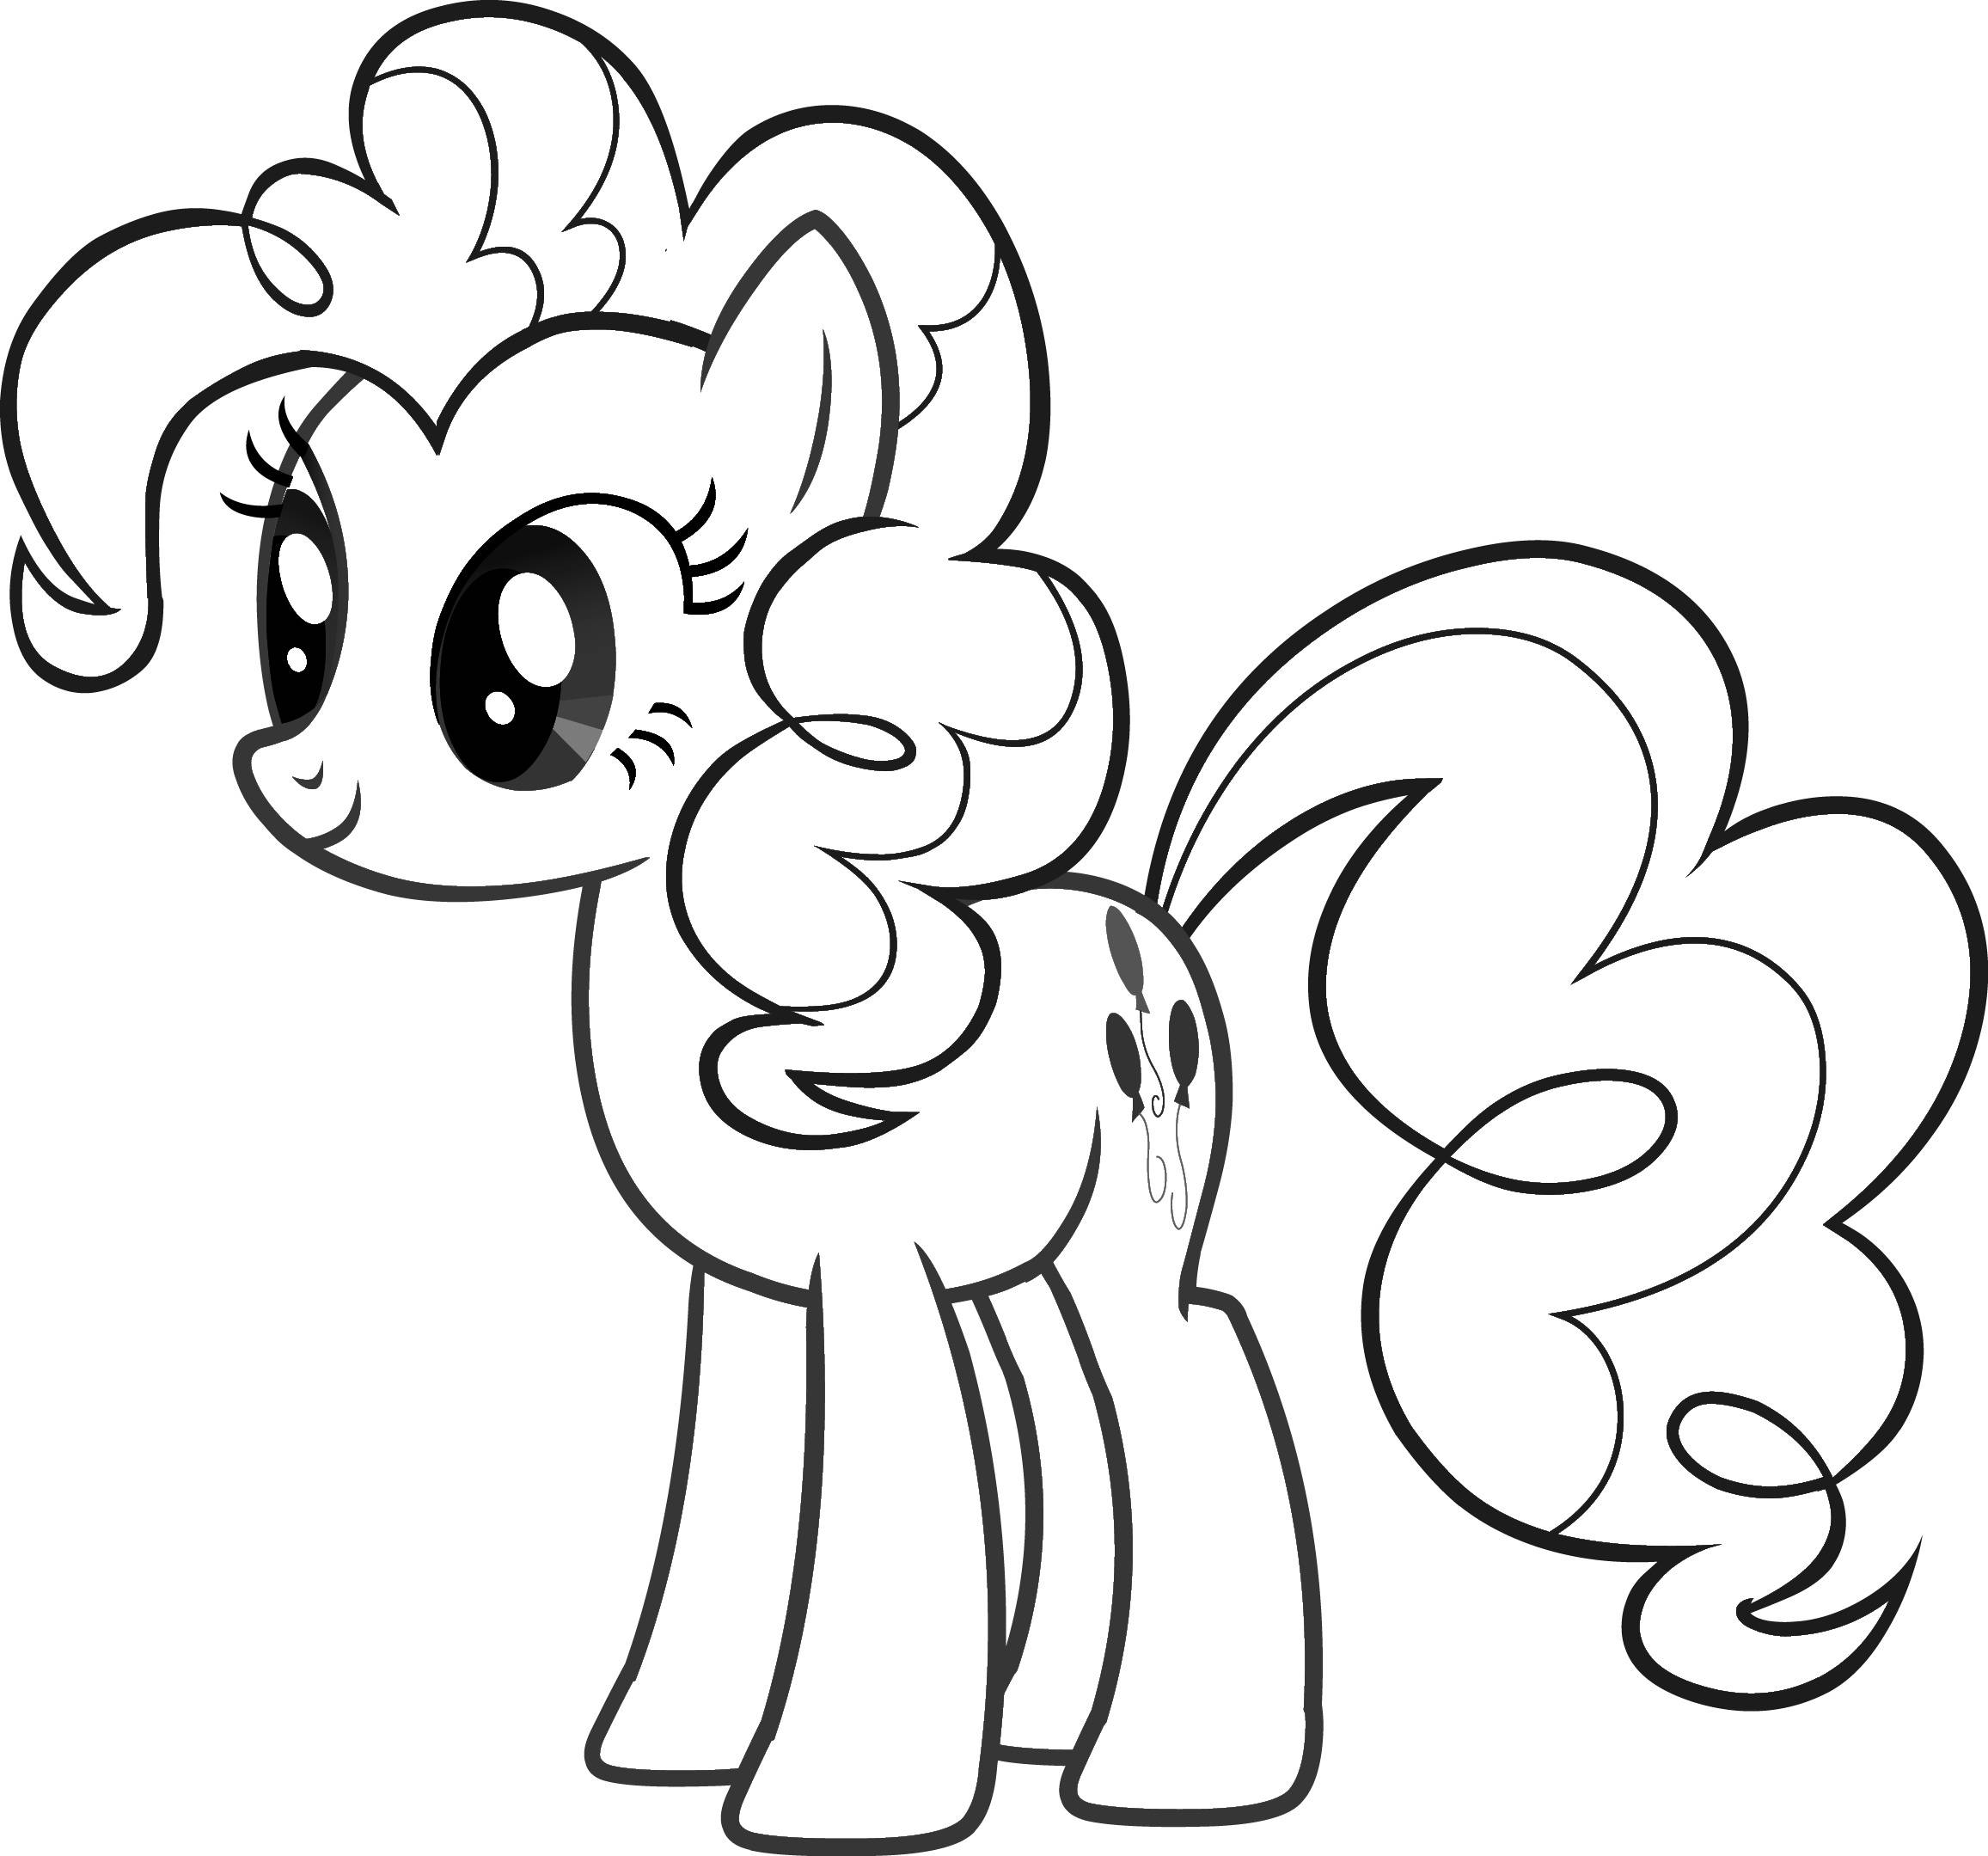 my little pony coloring pages - Pony Coloring Pages